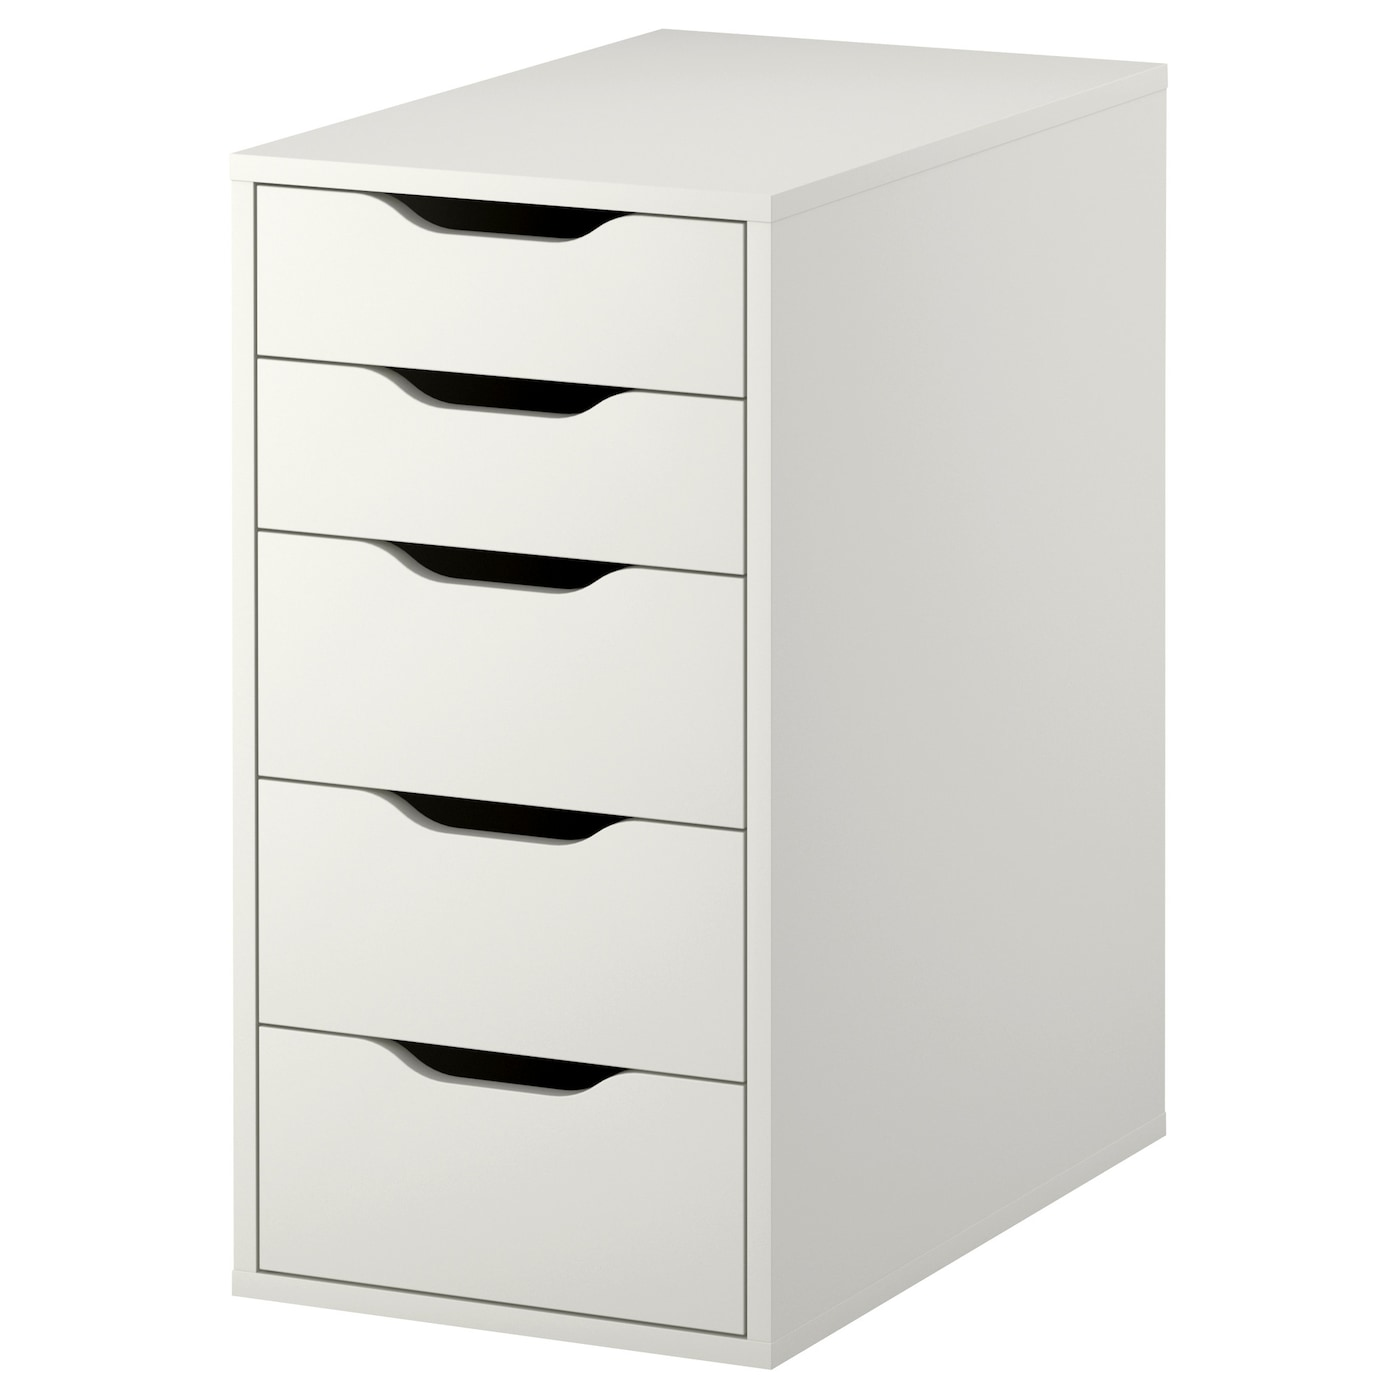 Use 2 Ikea Alex Drawer units are the